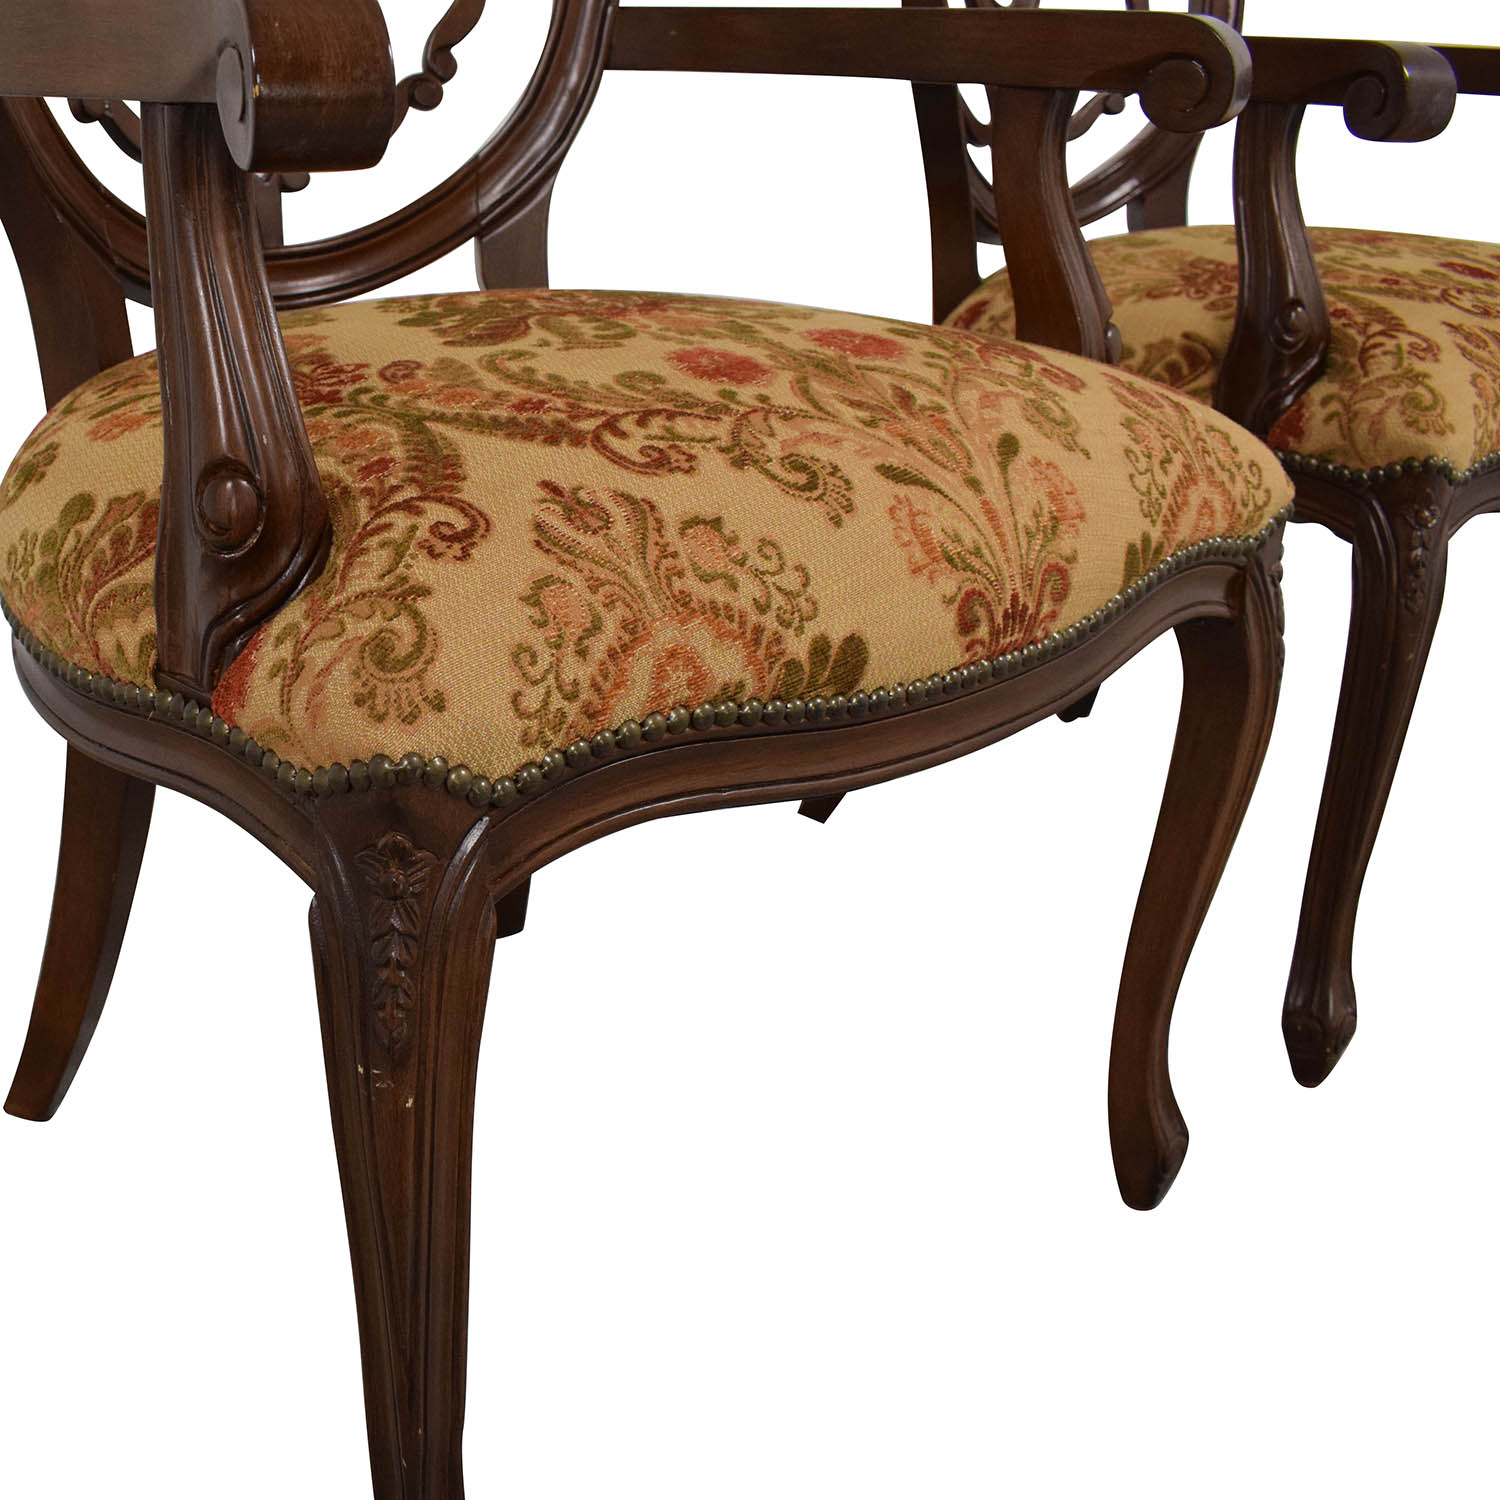 Floral Upholstered Armchairs with Antique Finish nj